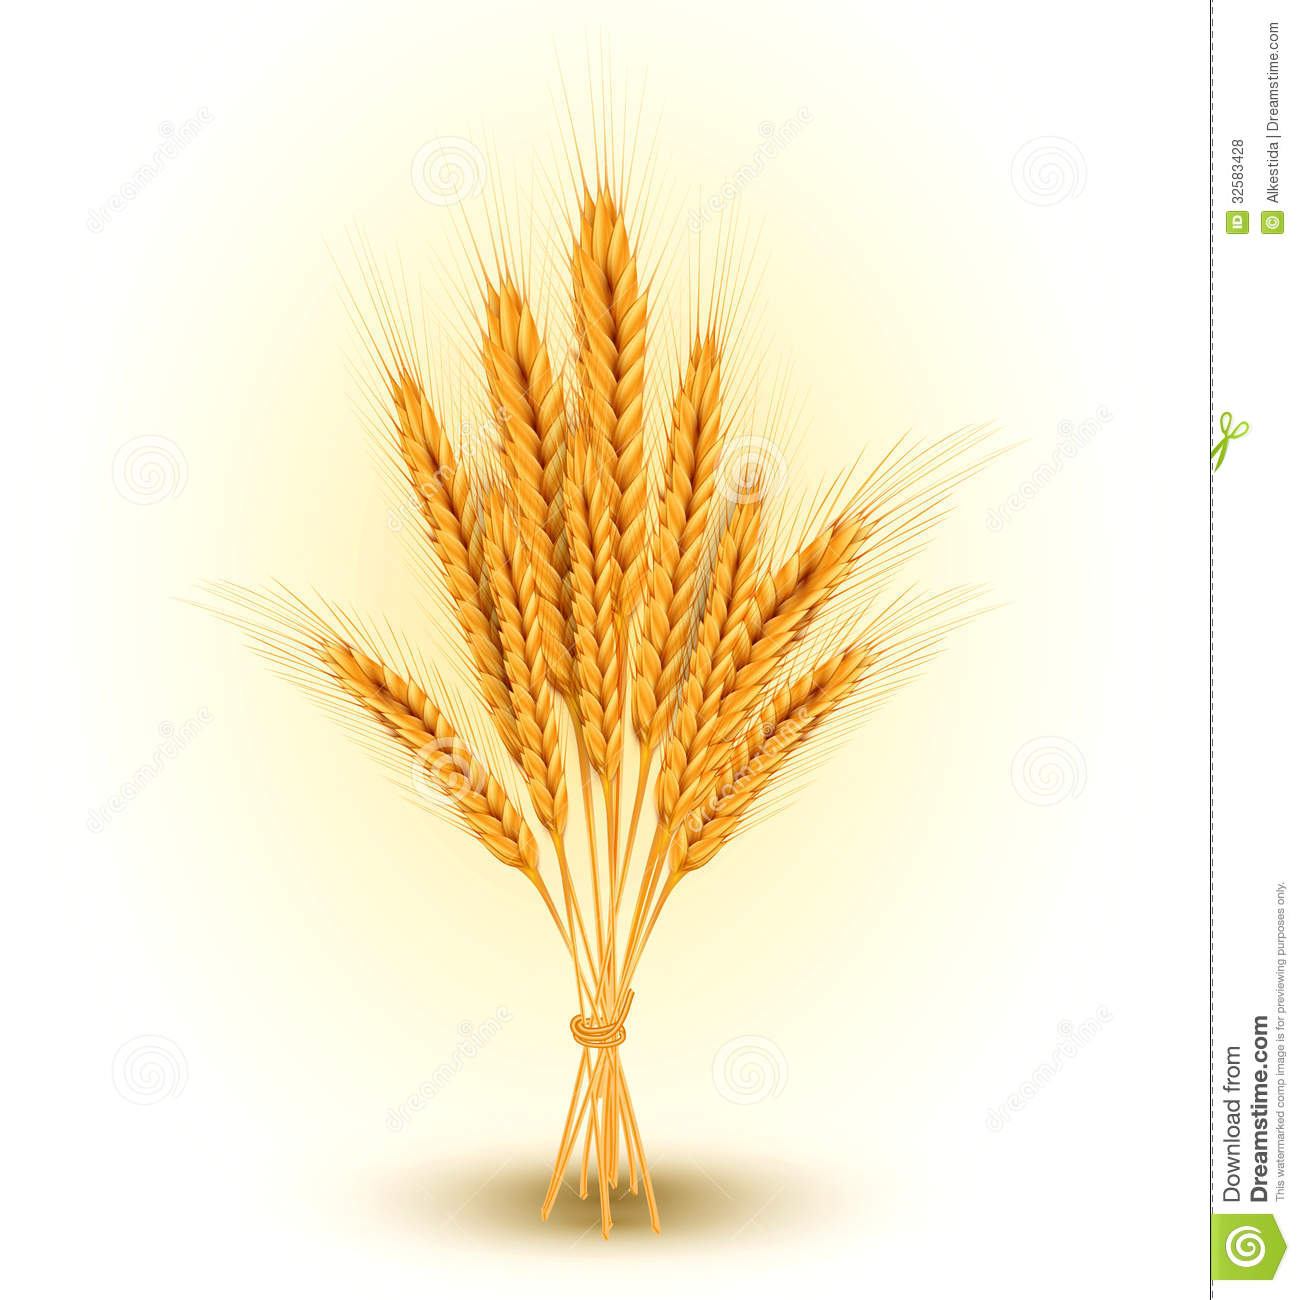 Royalty Free Stock Photos Vector Background Sheaf Golden Wheat Ear Ears Image32583428 on Plant Life Cycle Clip Art